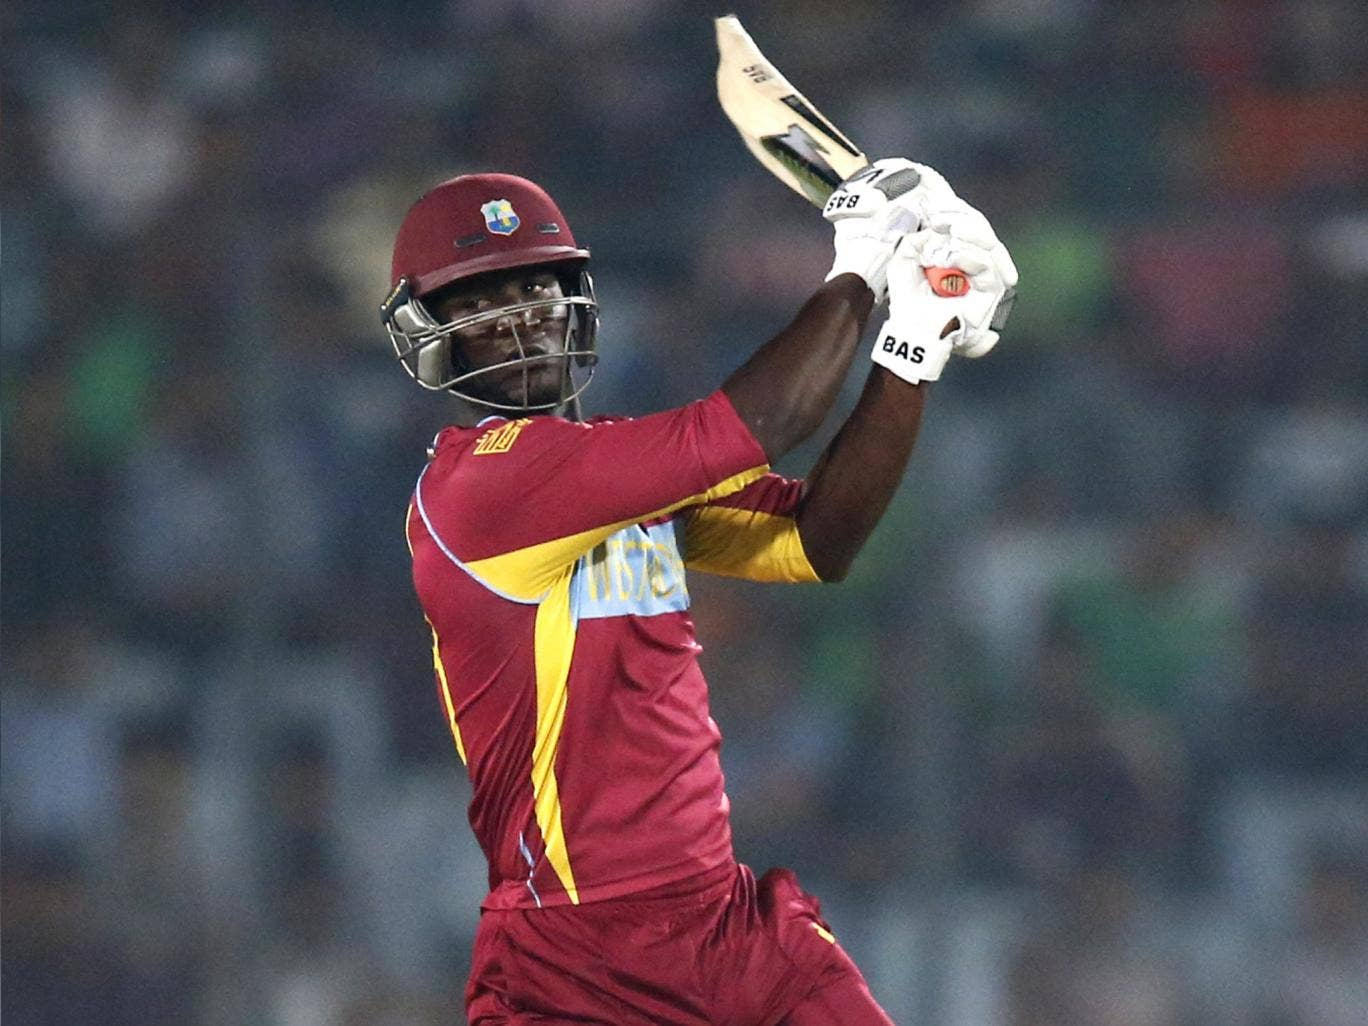 Darren Sammy hit an unbeaten 42 off 20 balls against Pakistan